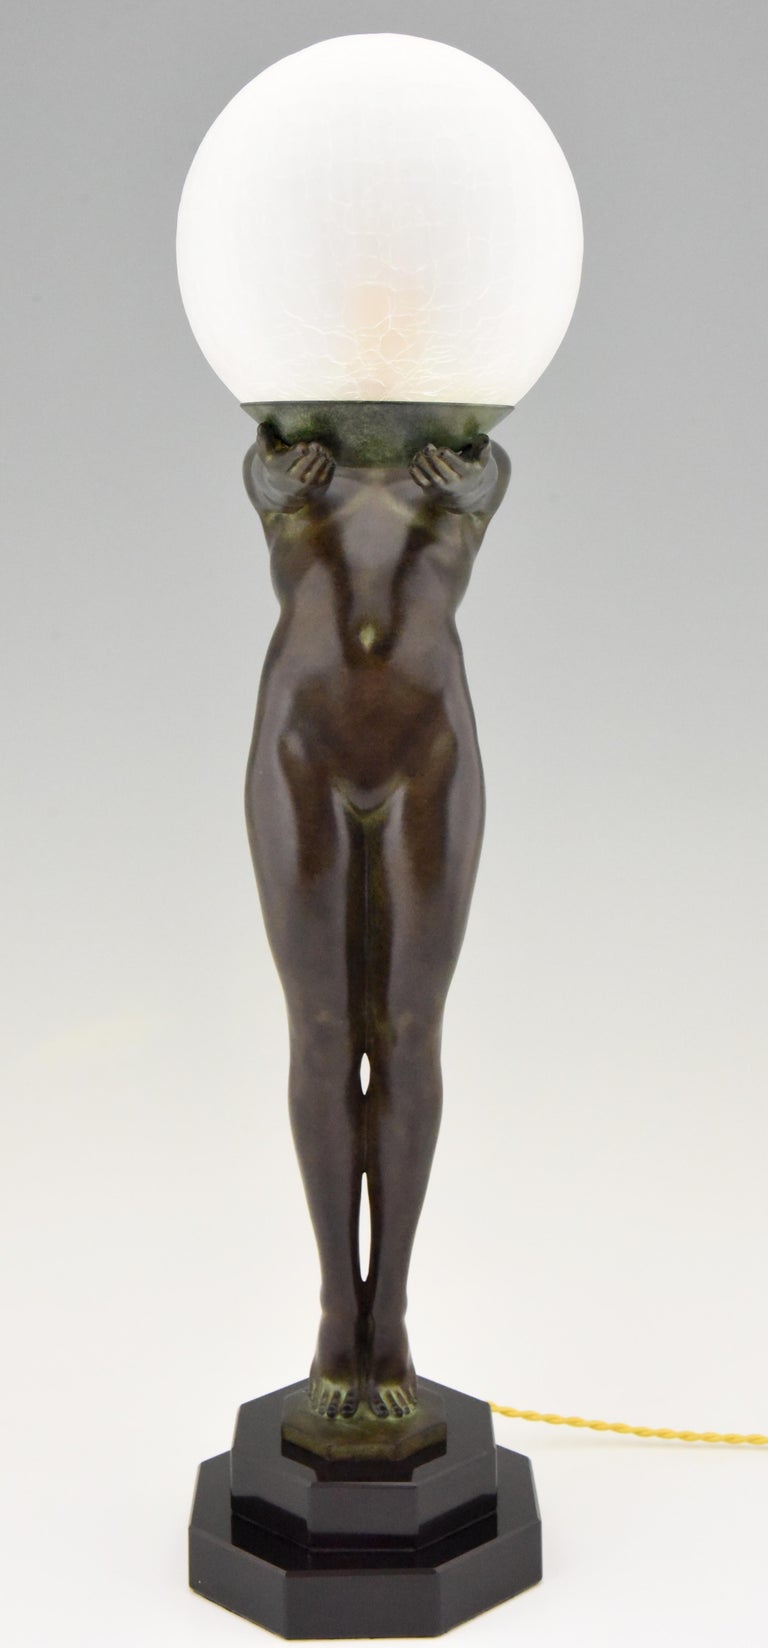 Pair of Art Deco Style Lamps Lumina Standing Nude Sculpture Max Le Verrier For Sale 2